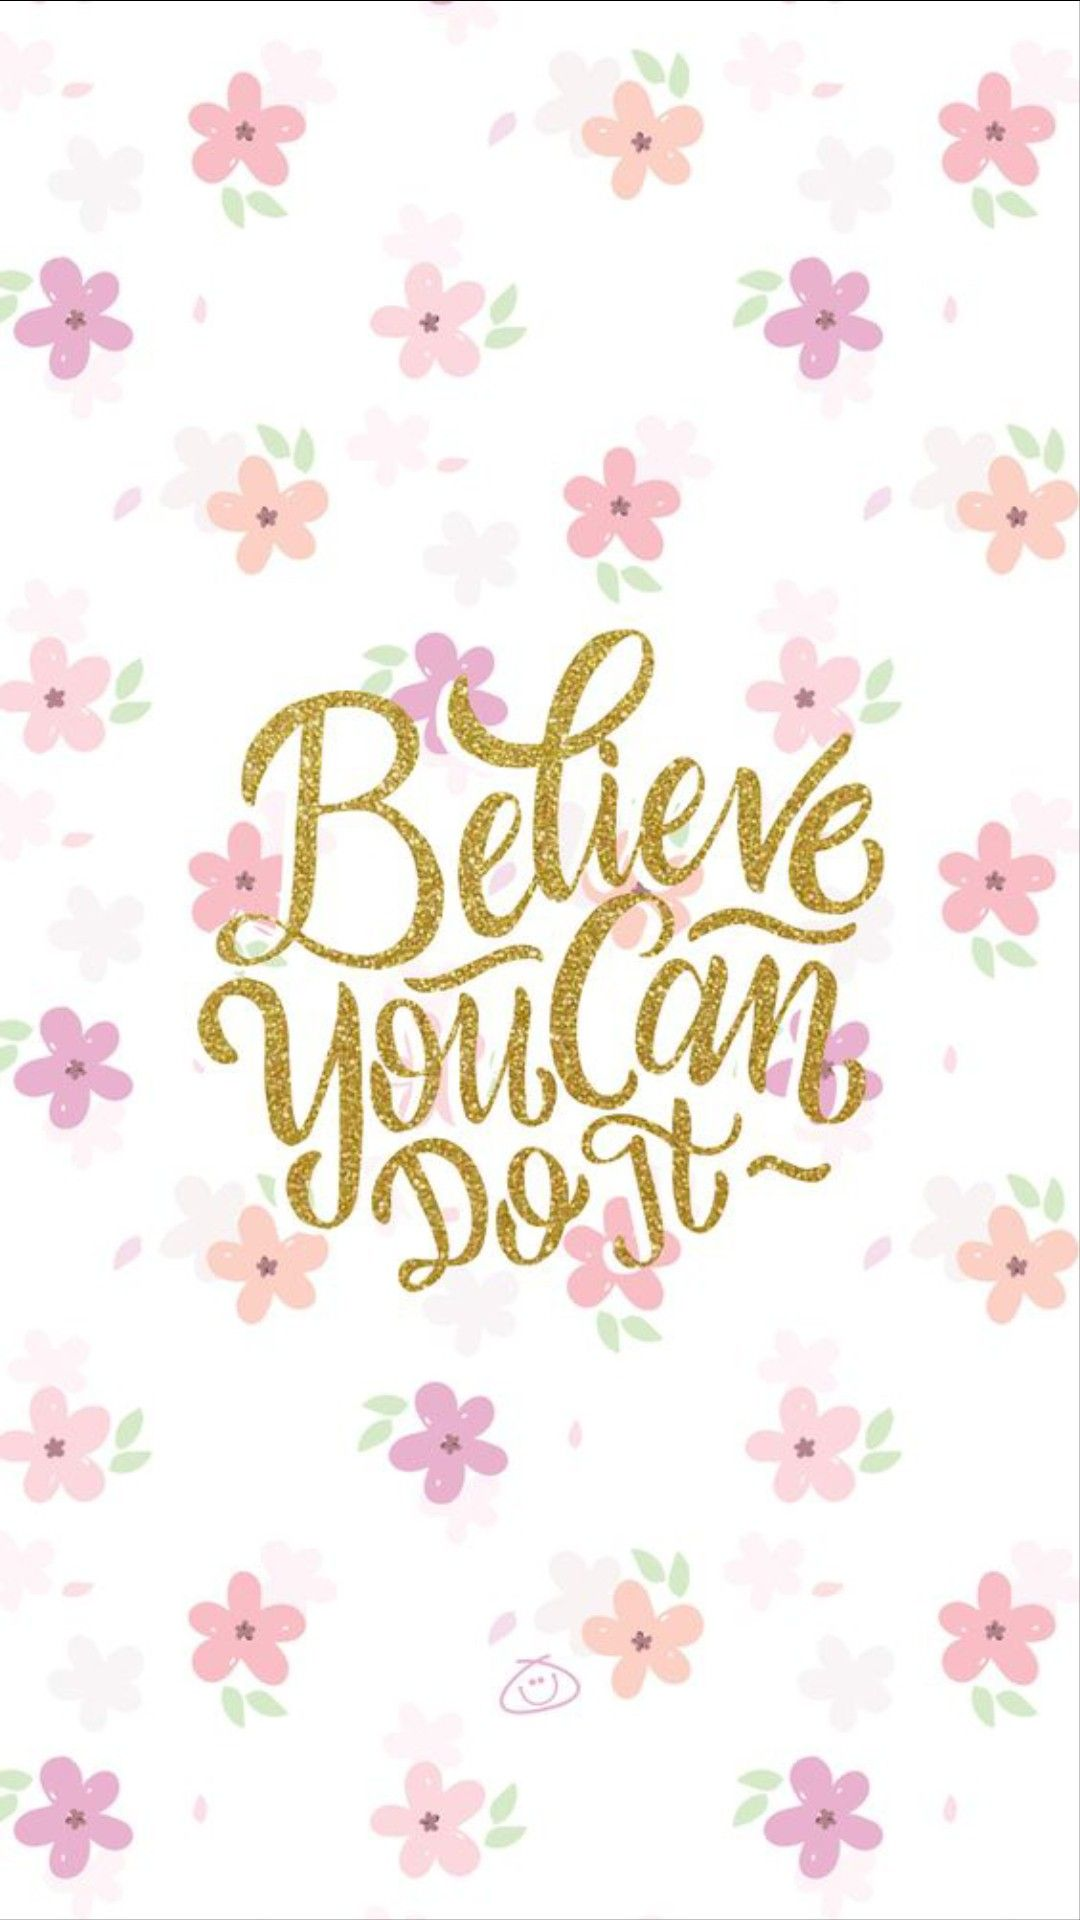 HD Quote Wallpaper Quotes Wallpapers Life quote believe you can do it